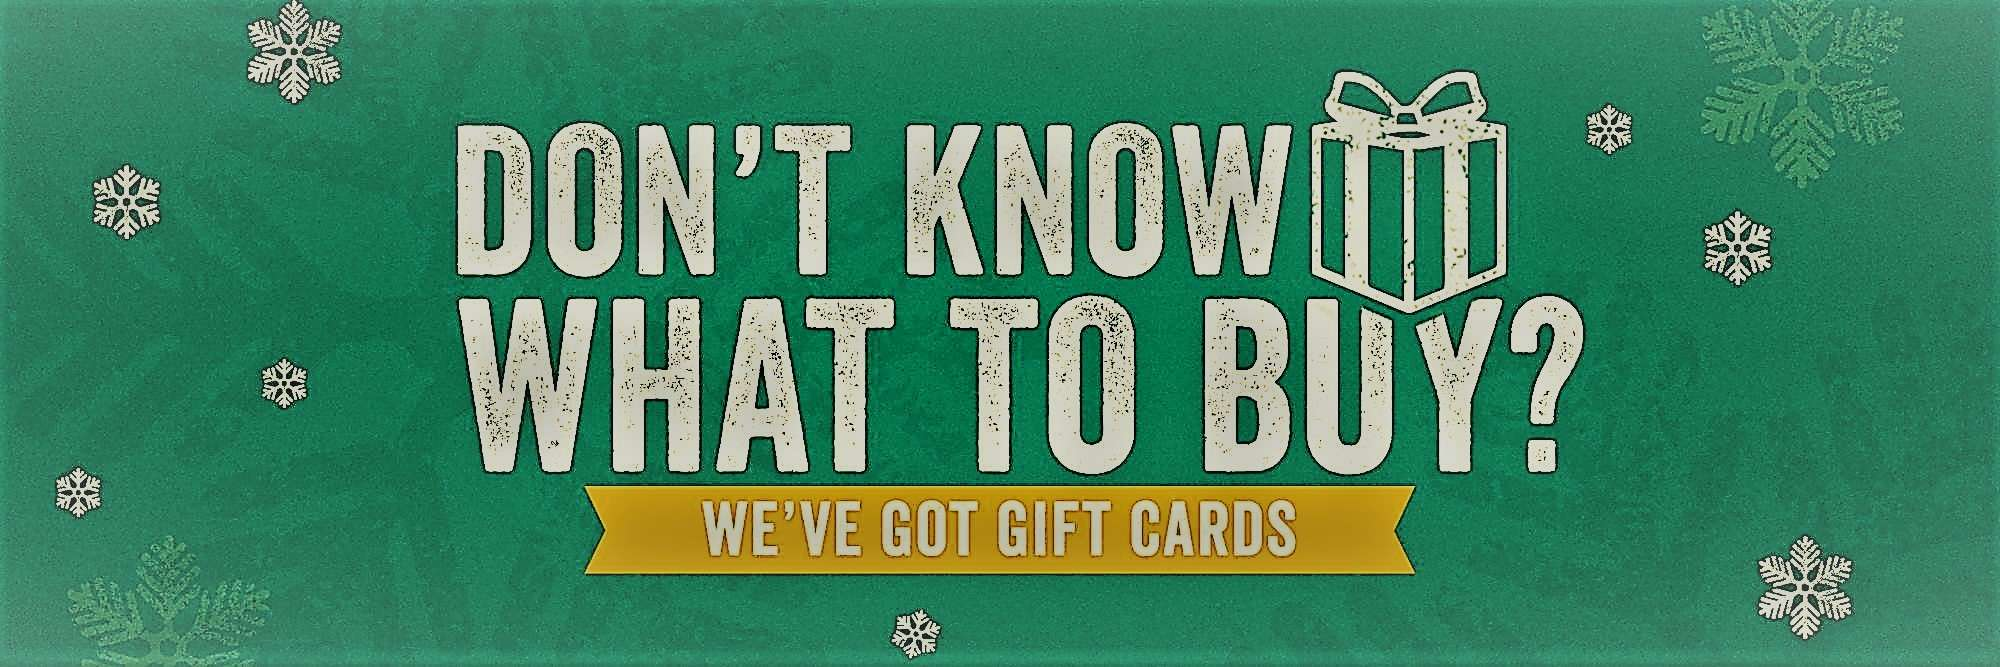 Gift Cards available in any denomination from The Bicycle Store in Hermitage, Pa